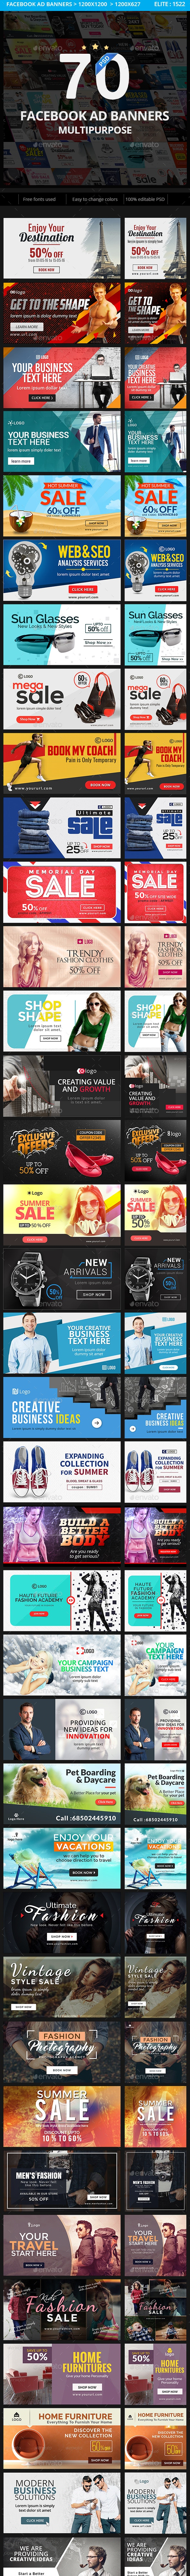 Multipurpose Facebook Ad Banners - 70 Designs - Social Media Web Elements